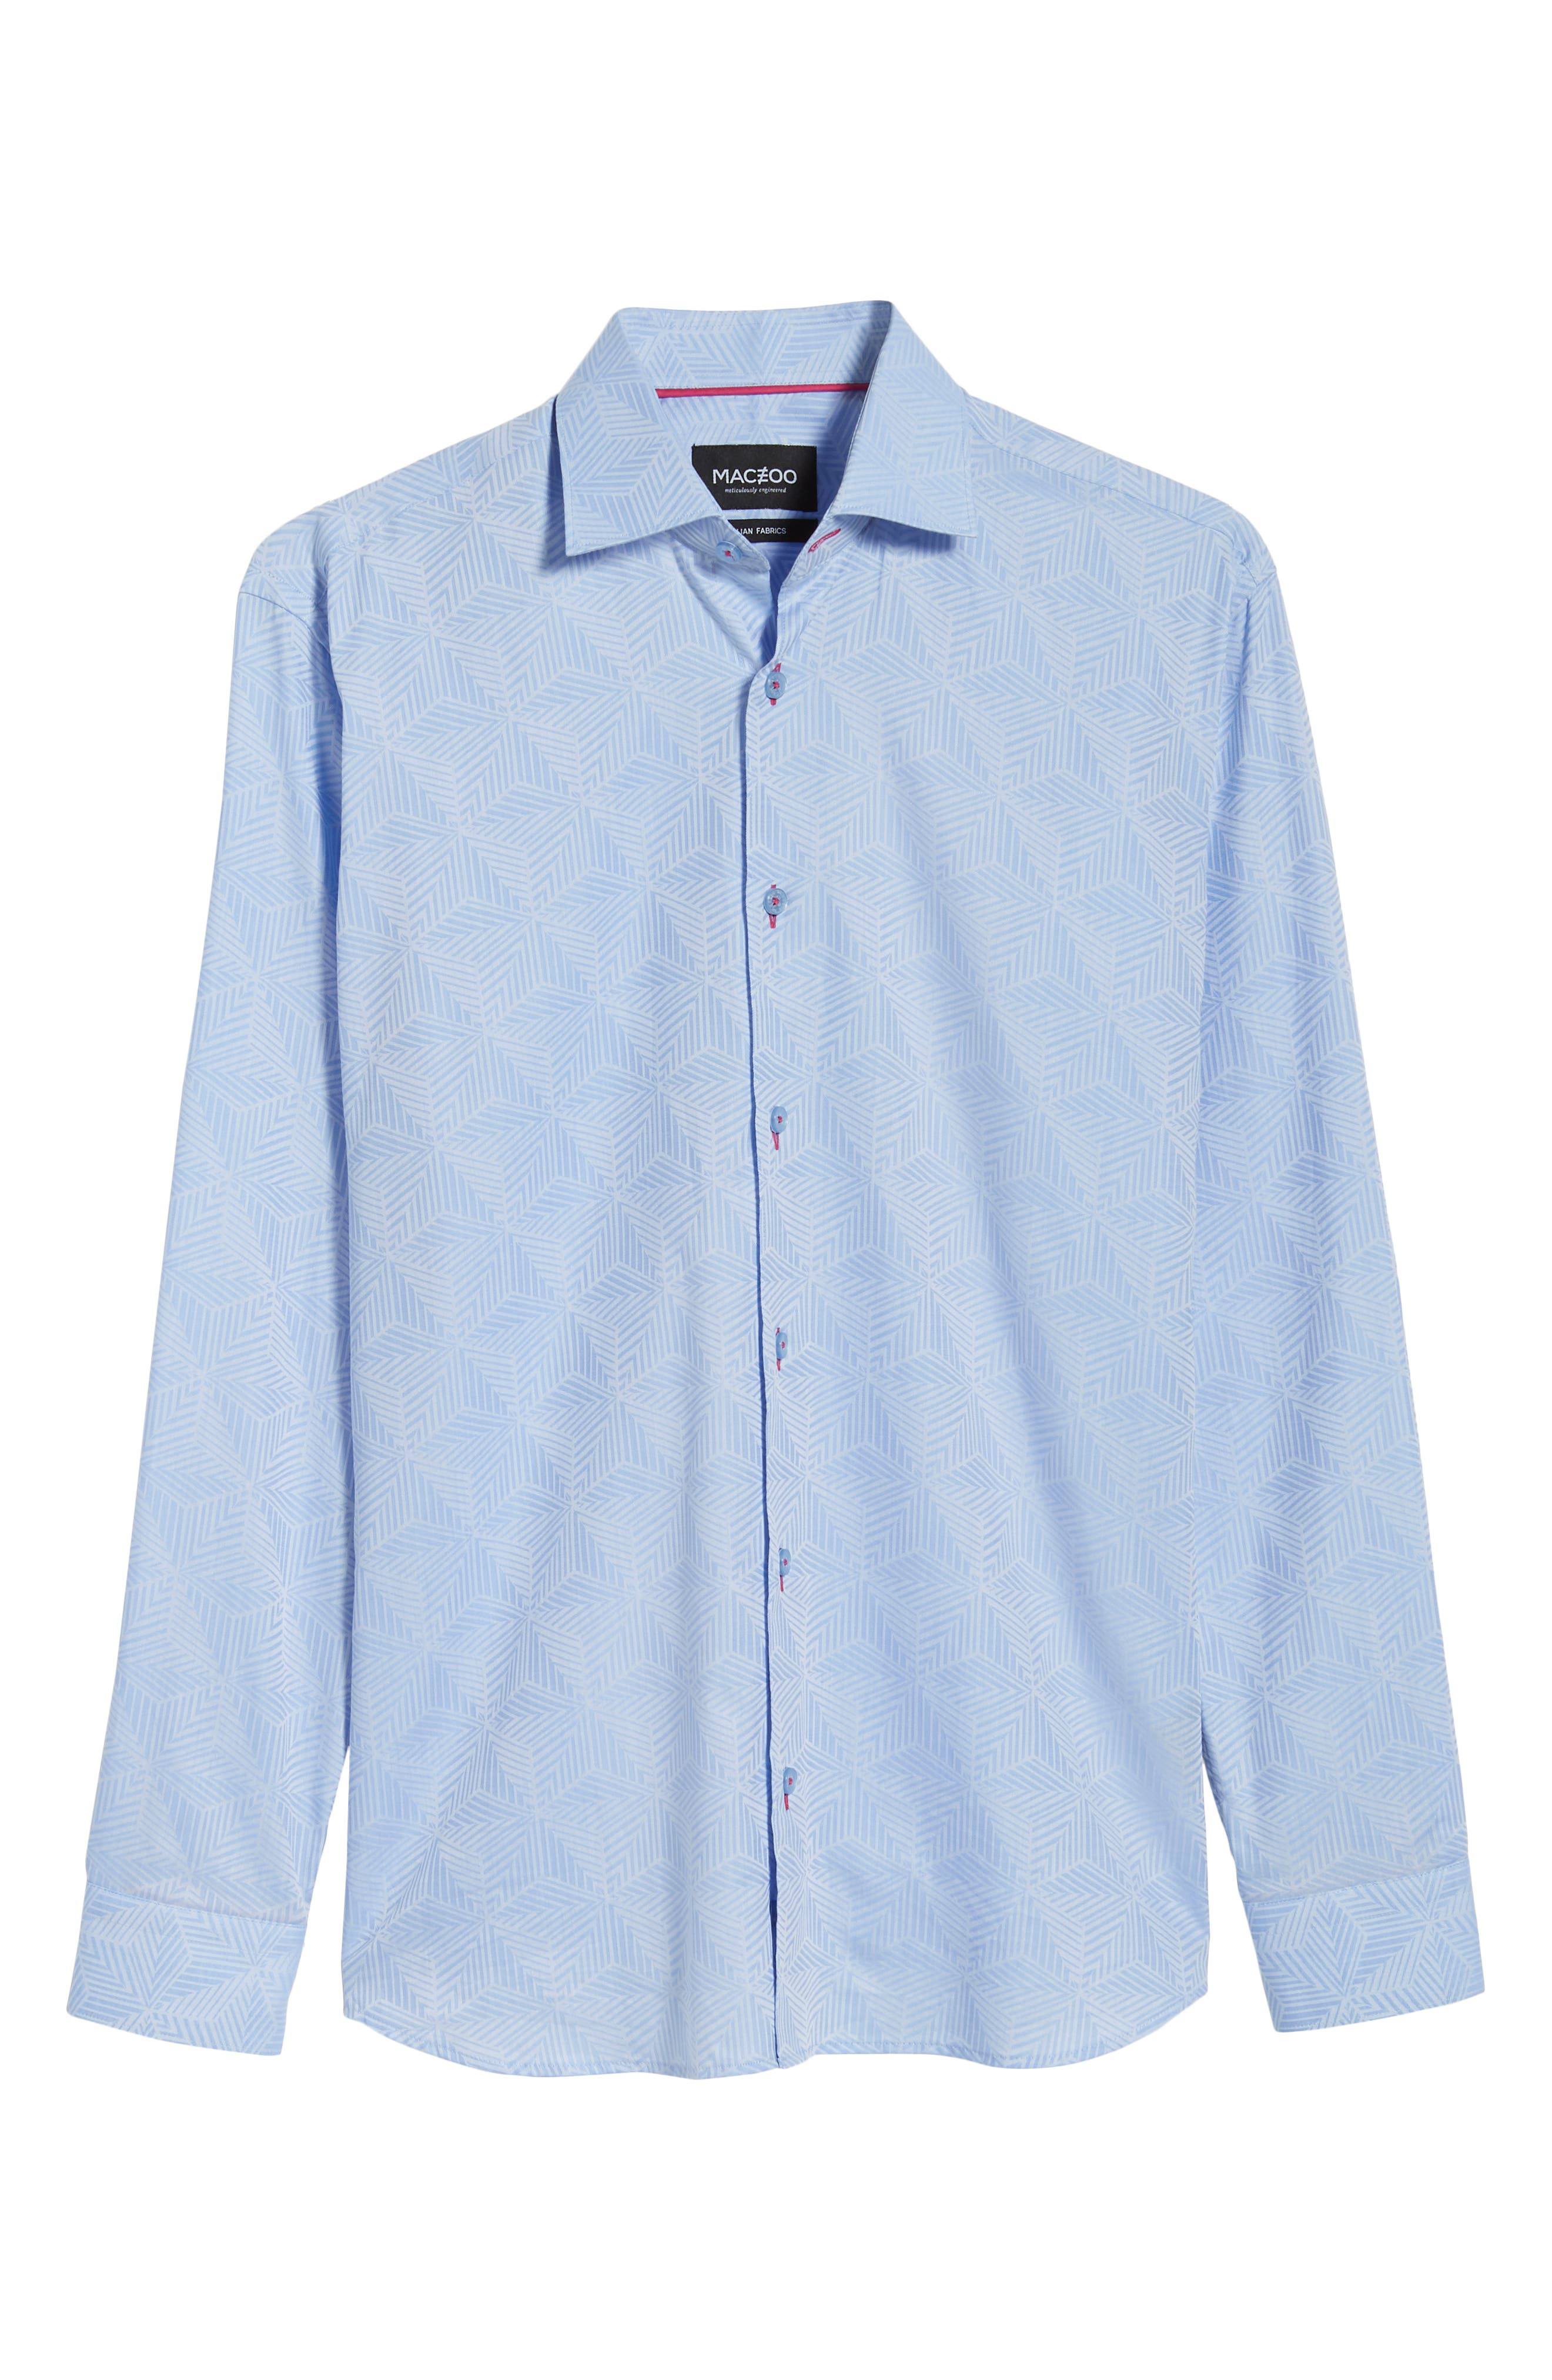 Luxor Cycad Sport Shirt,                             Alternate thumbnail 5, color,                             Blue